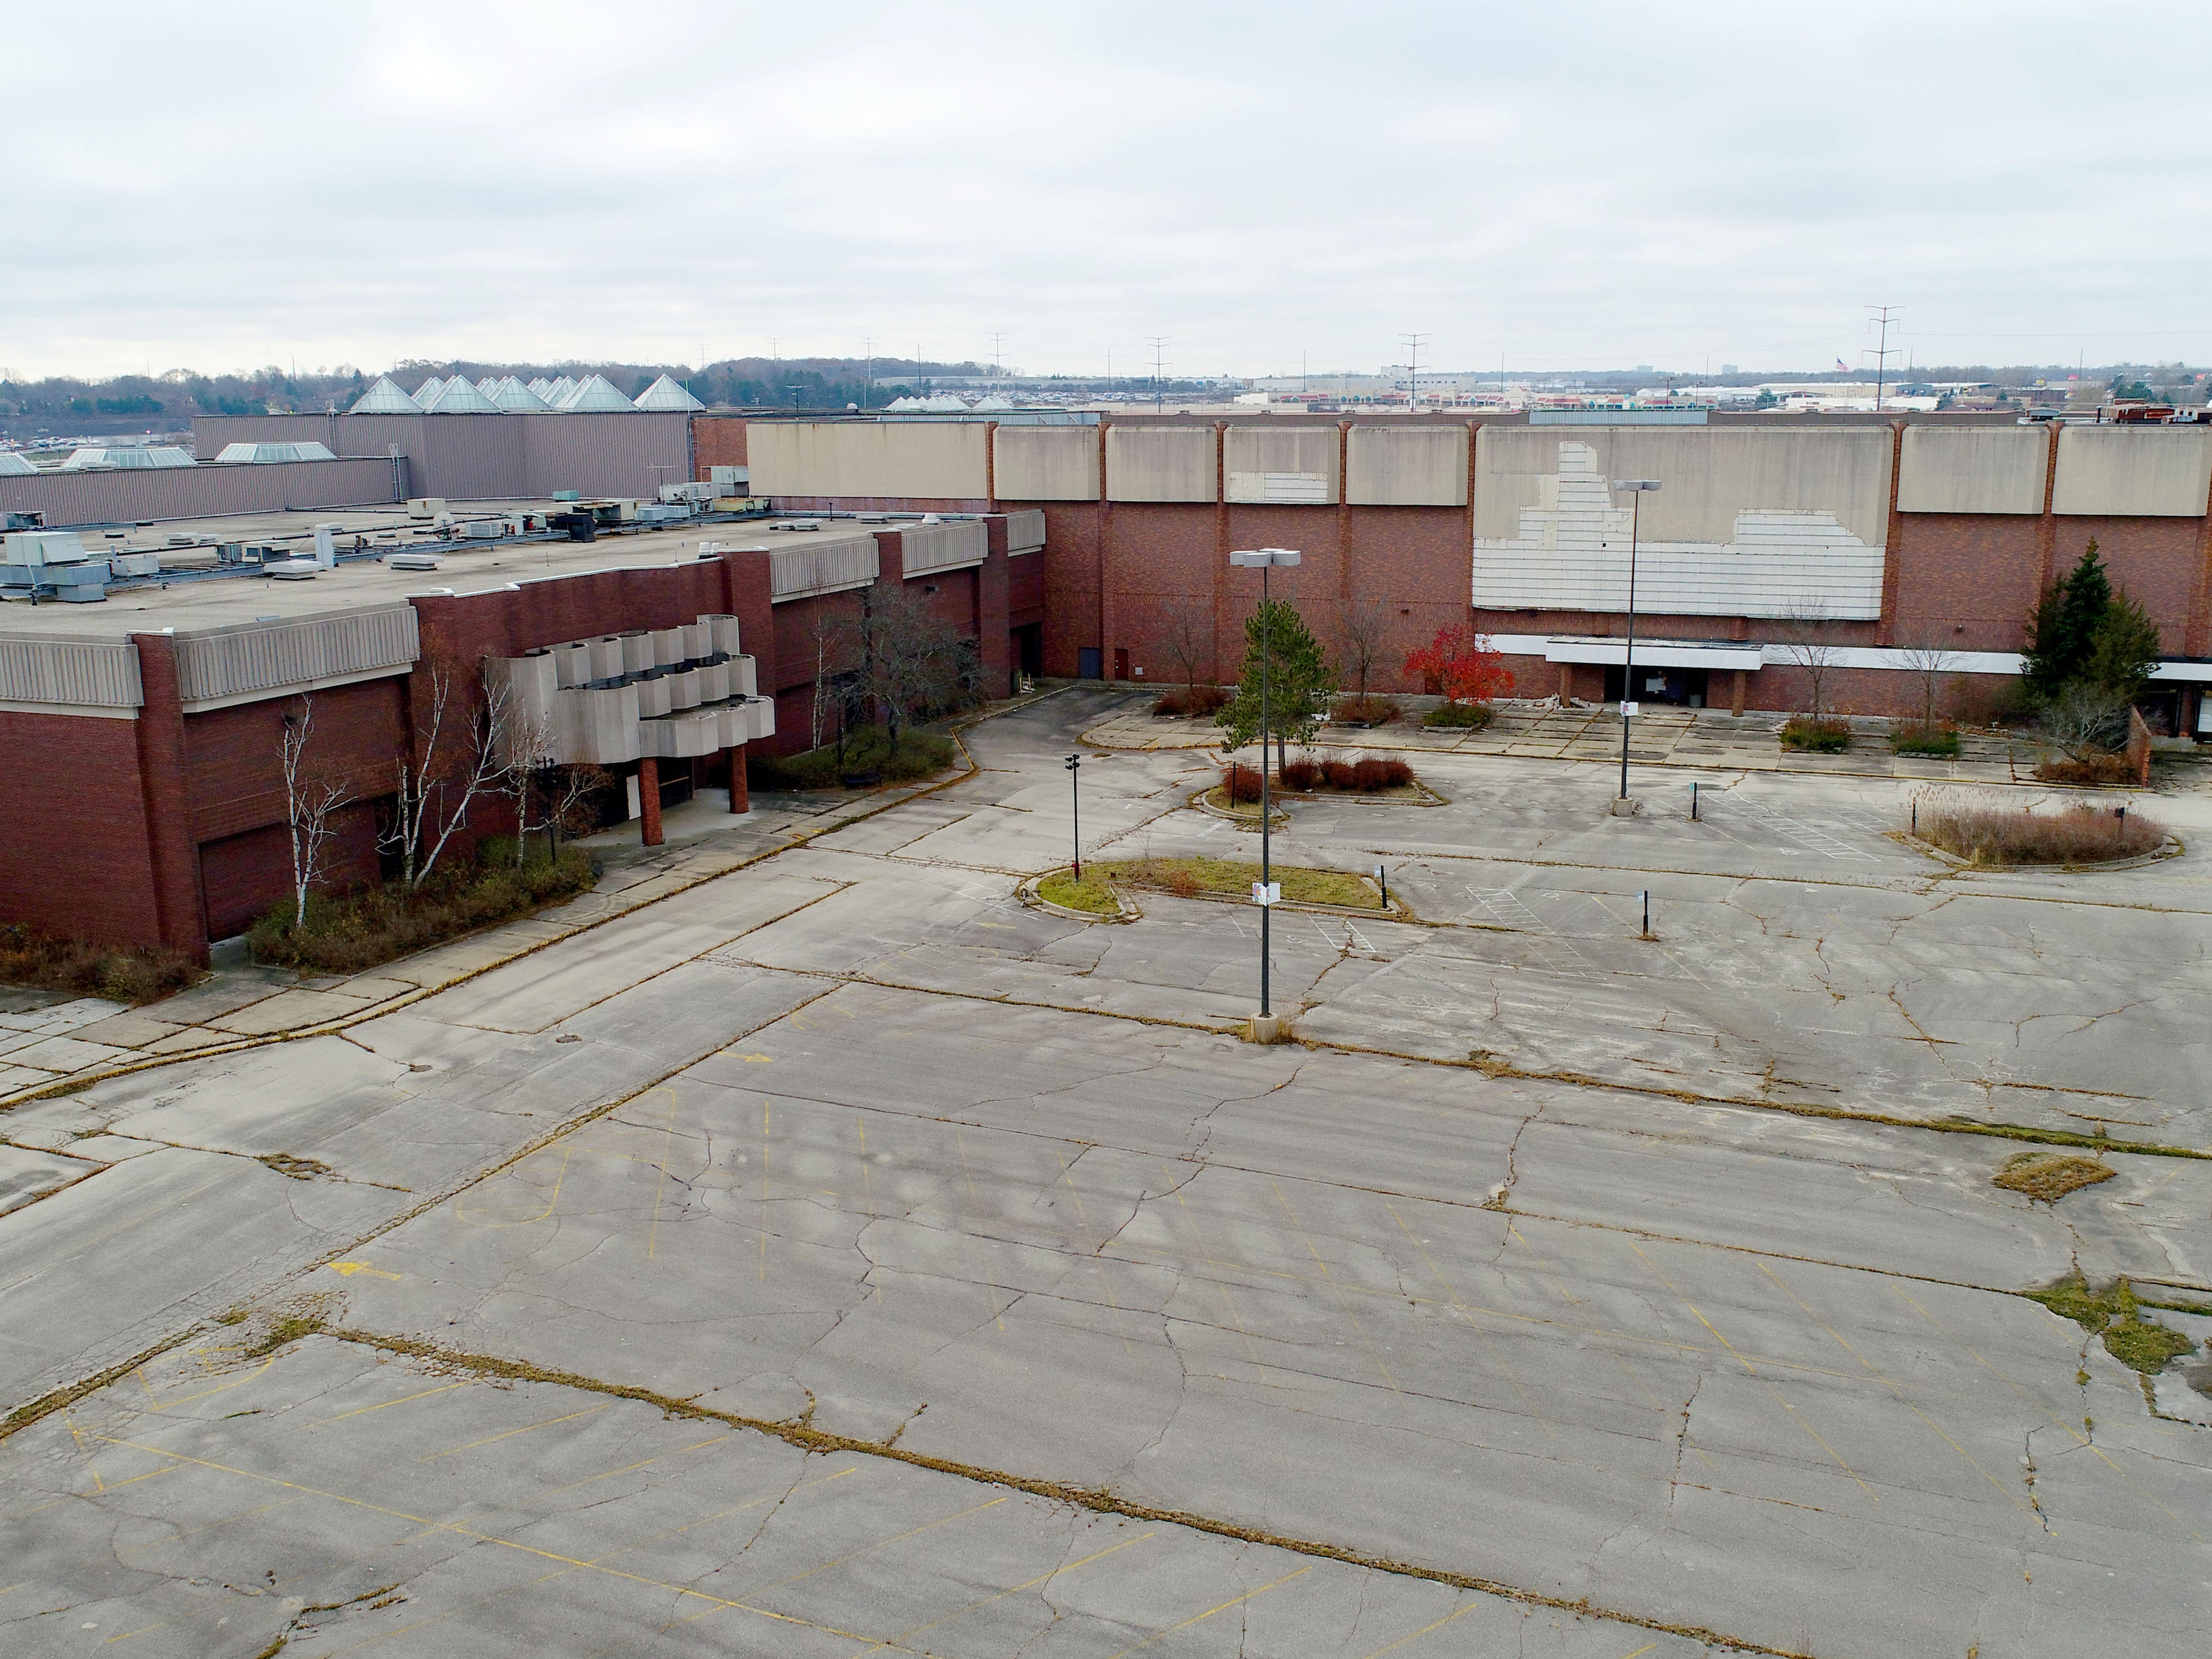 November 2017: Milwaukee's former Northridge Mall on W. Brown Deer Road, looking southeast across the abandoned complex.